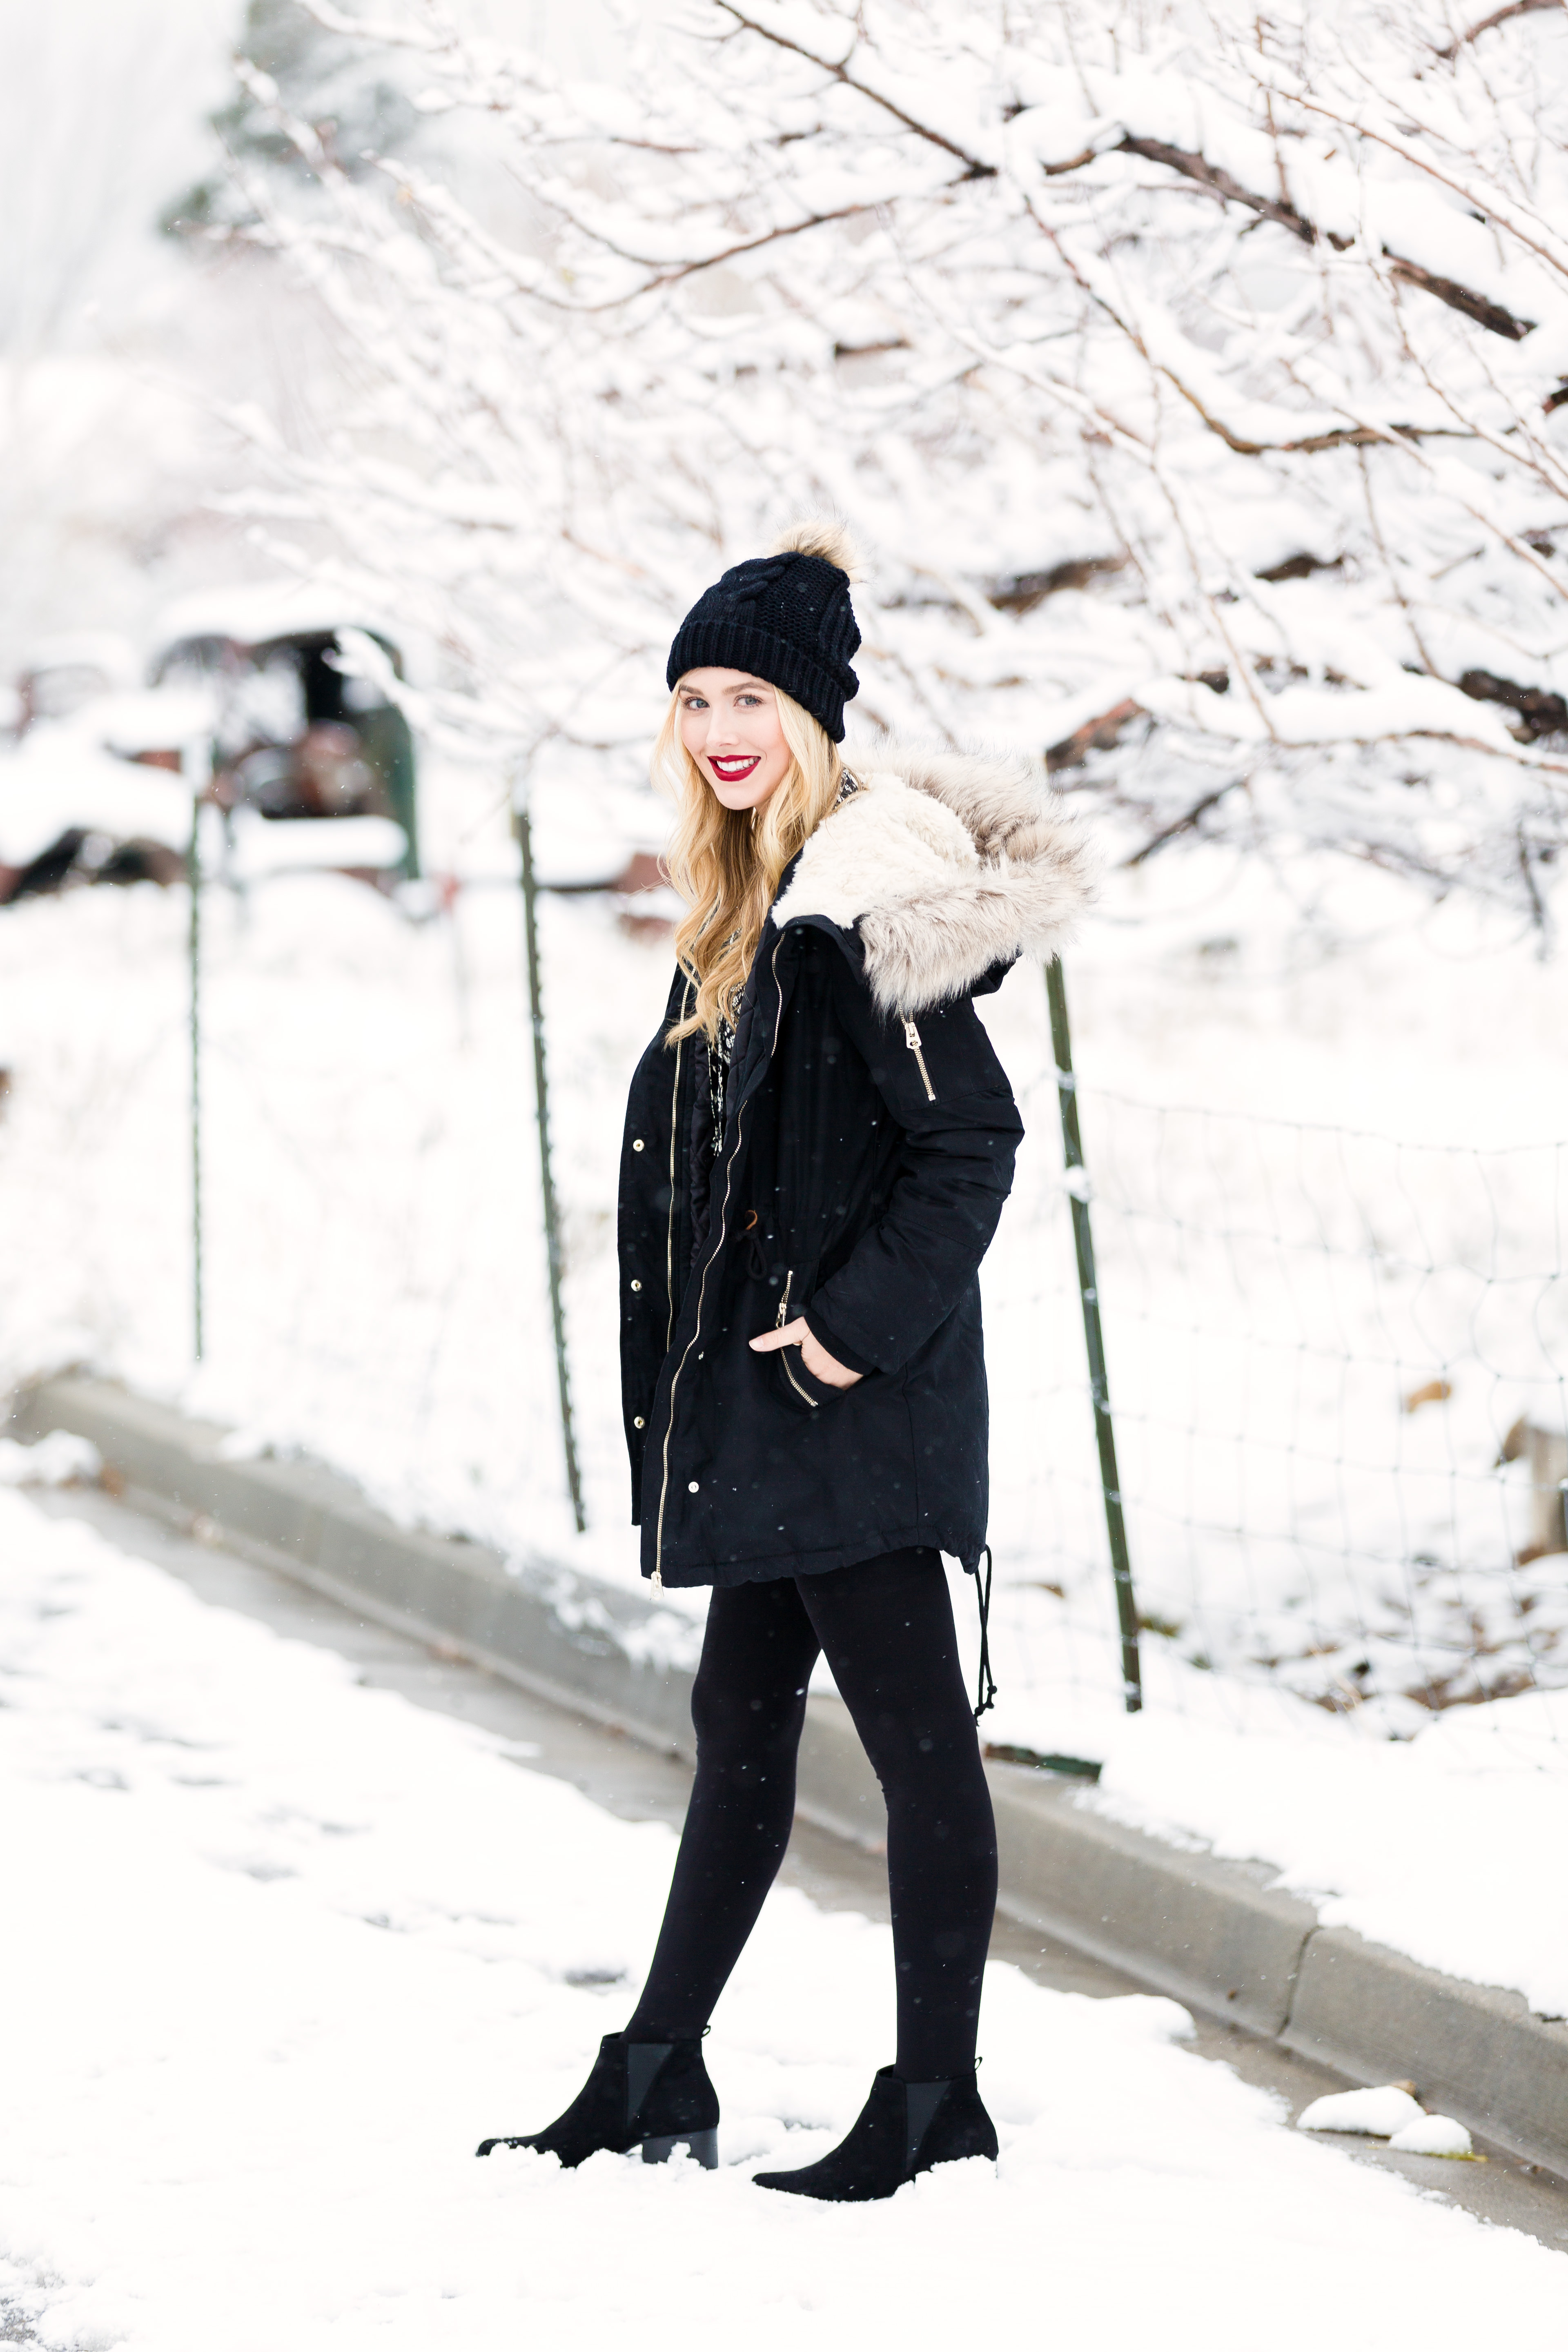 h&m black coat with fur